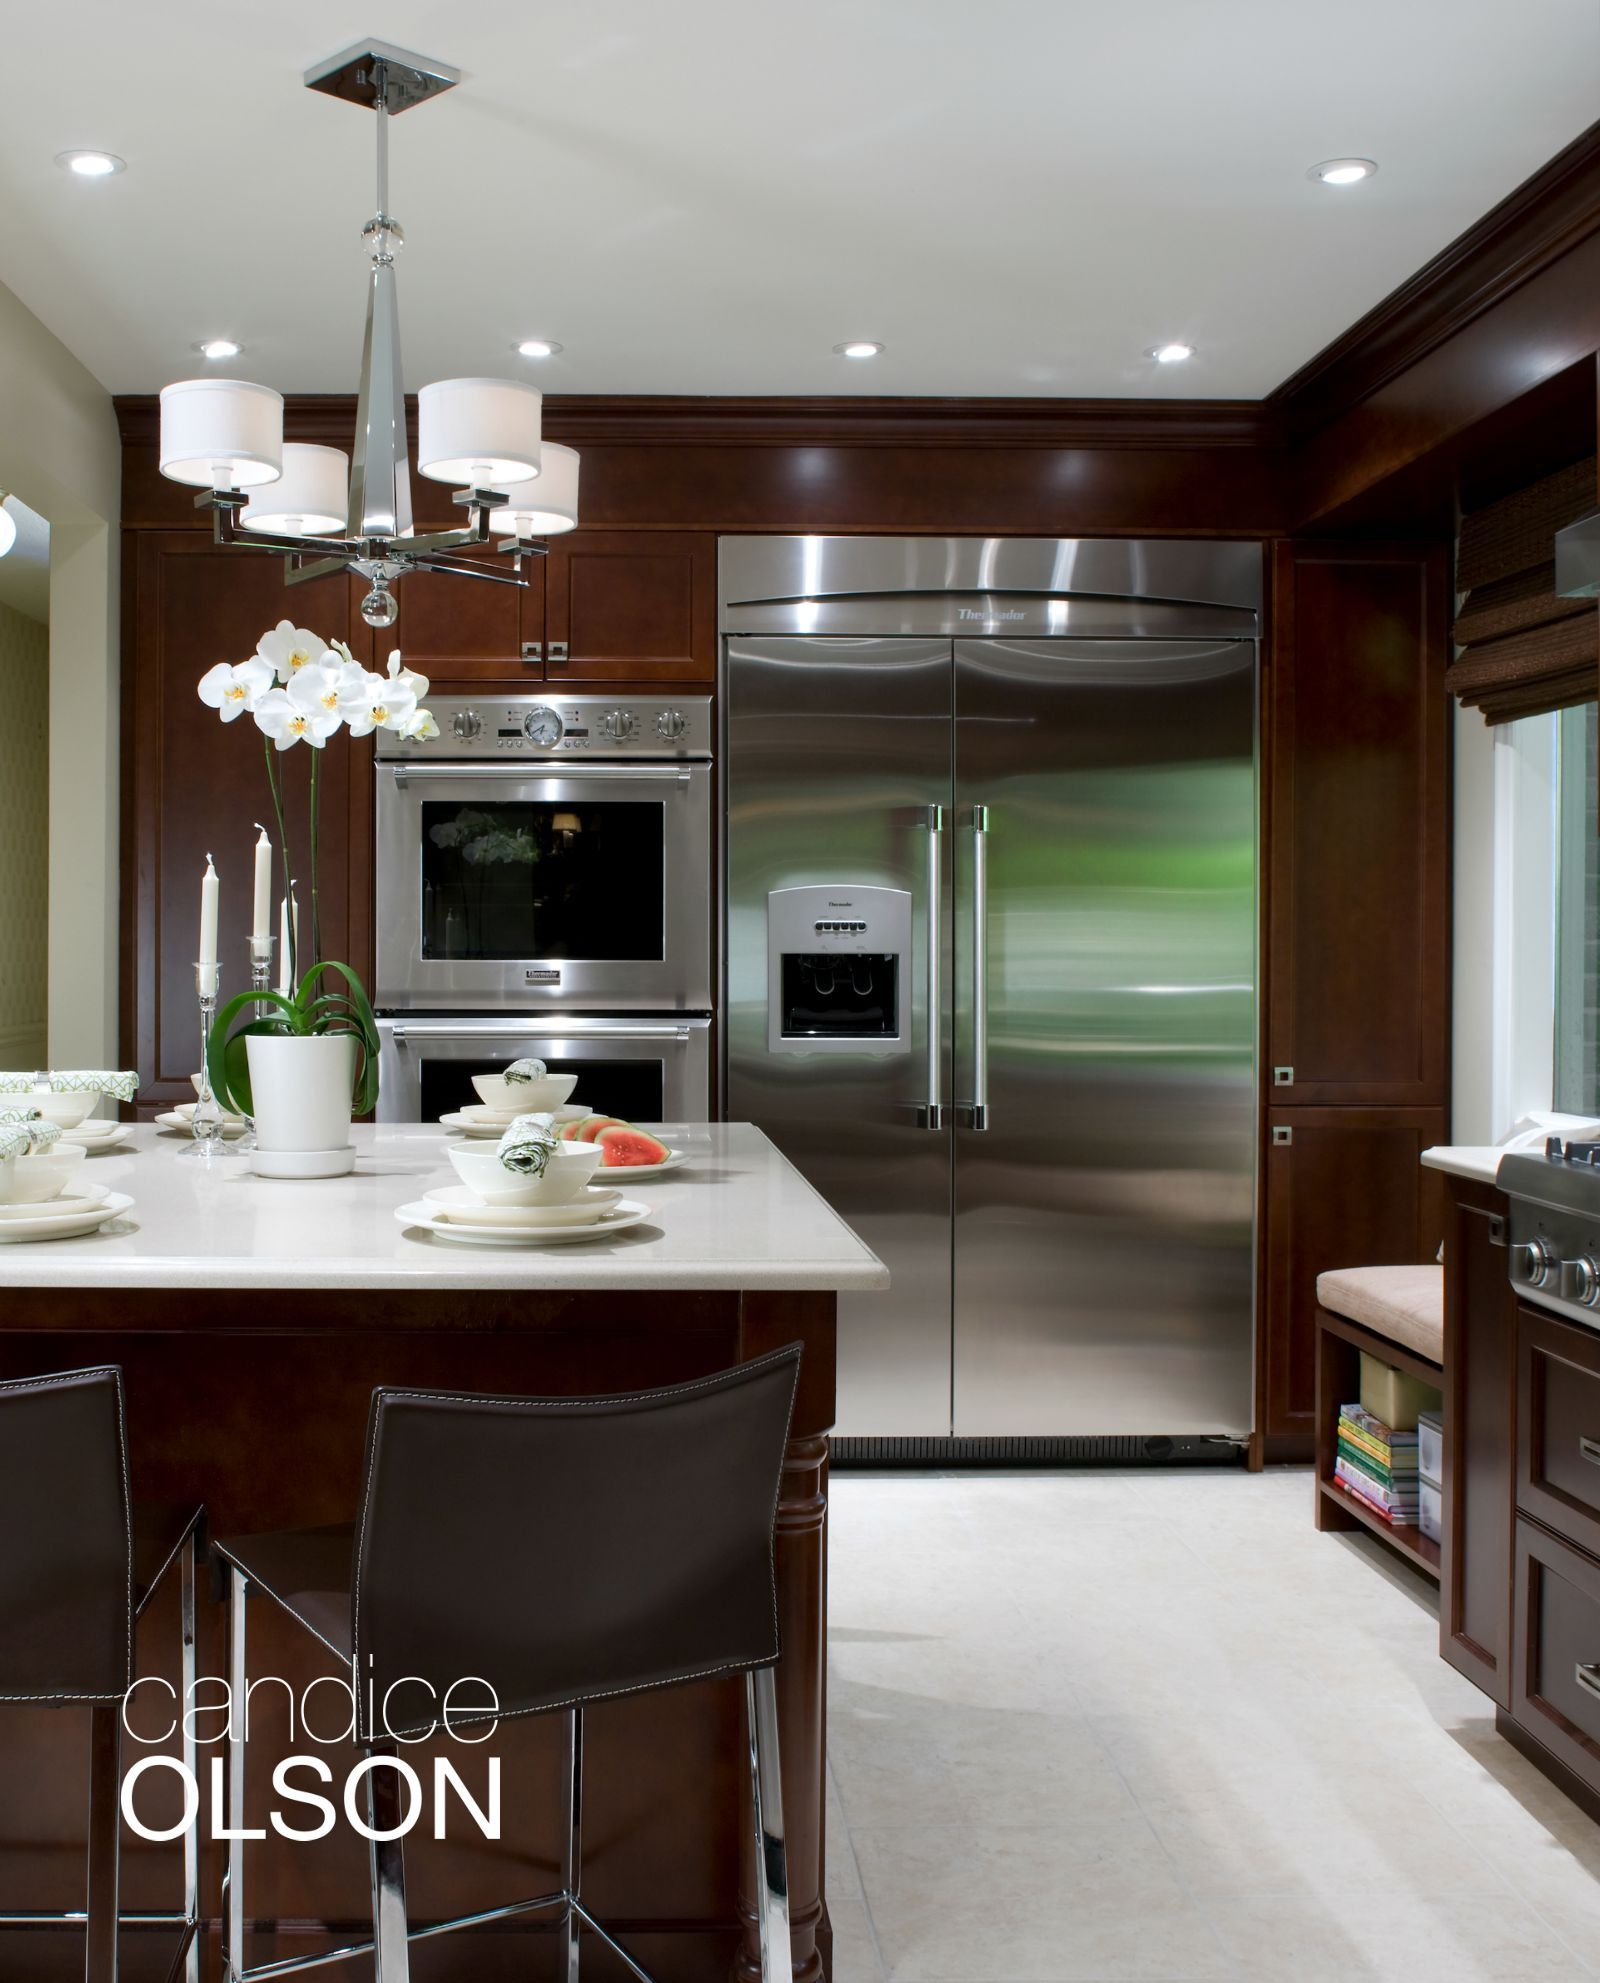 Mid Level Kitchen Cabinets Kohler Brass Faucet Creating Layers Of Lighting With Ambient And